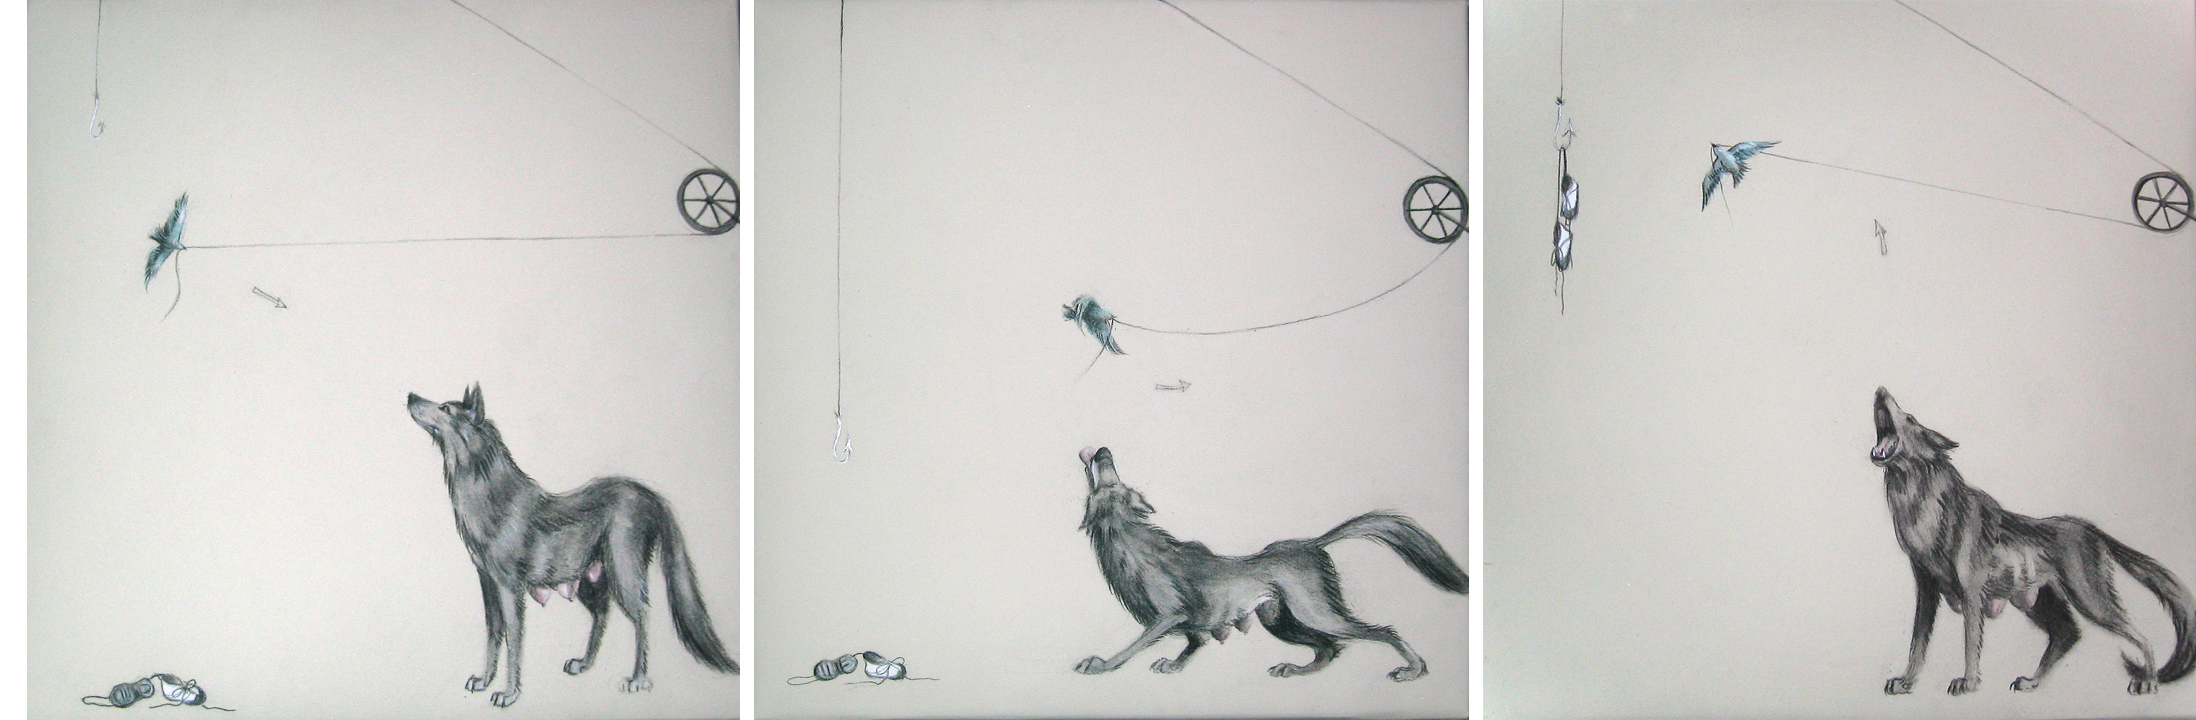 """Triptych (Up, Up, and Away) ,2005  Charcoal and ink on stretched paper  12x36"""""""